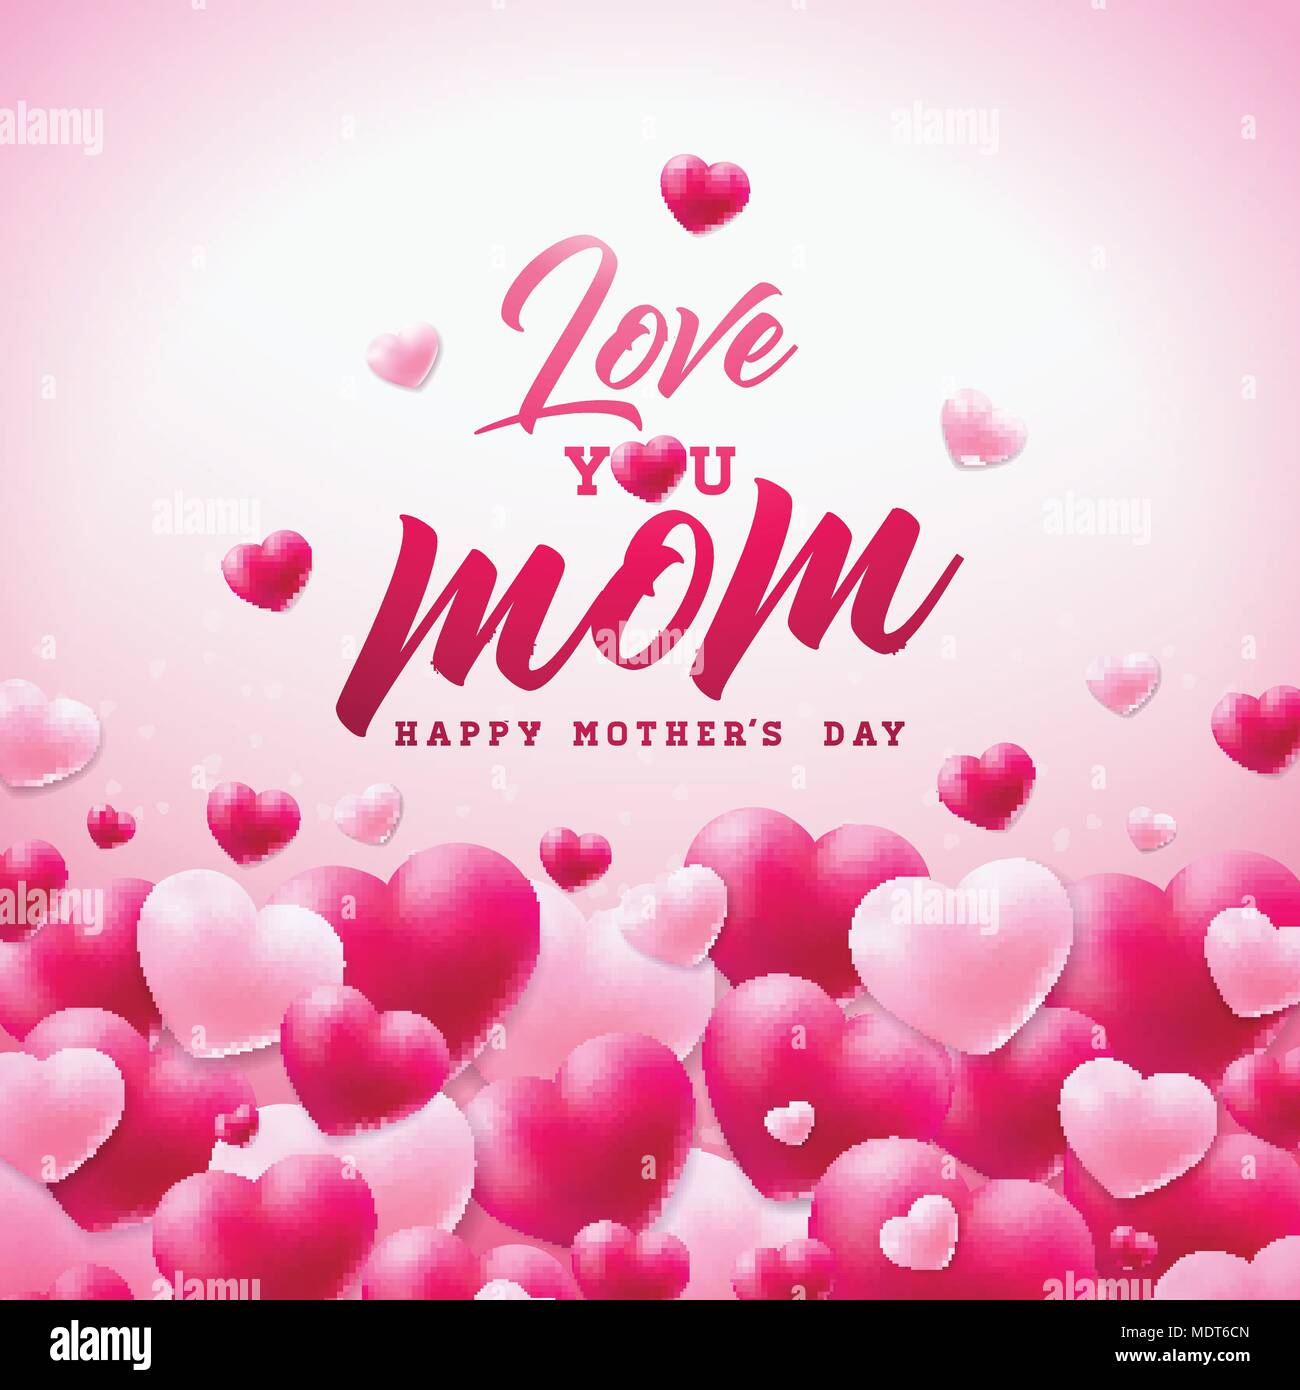 Happy Mothers Day Greeting Card Design With Heart And Love You Mom Typographic Elements On White Background Vector Celebration Illustration Template For